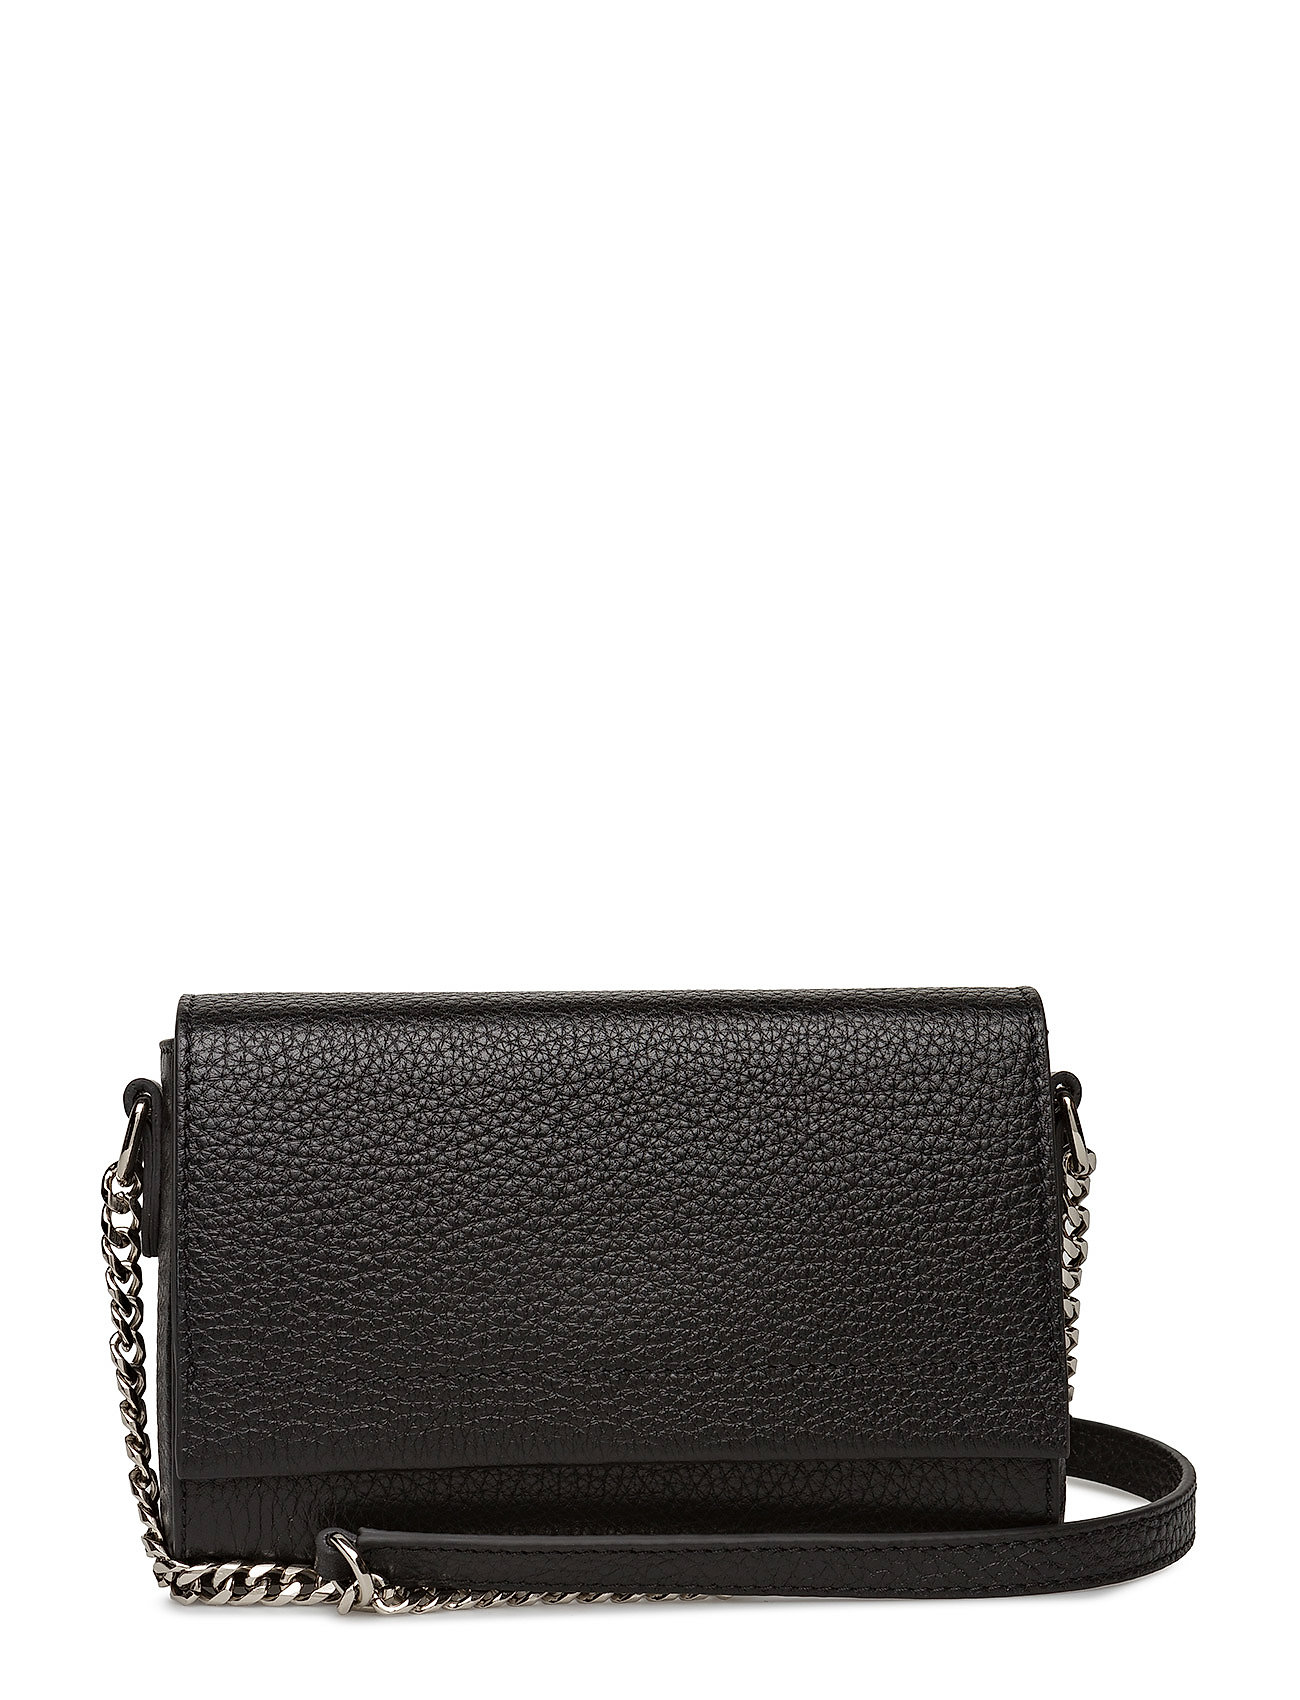 Decadent Evelyn cross-body